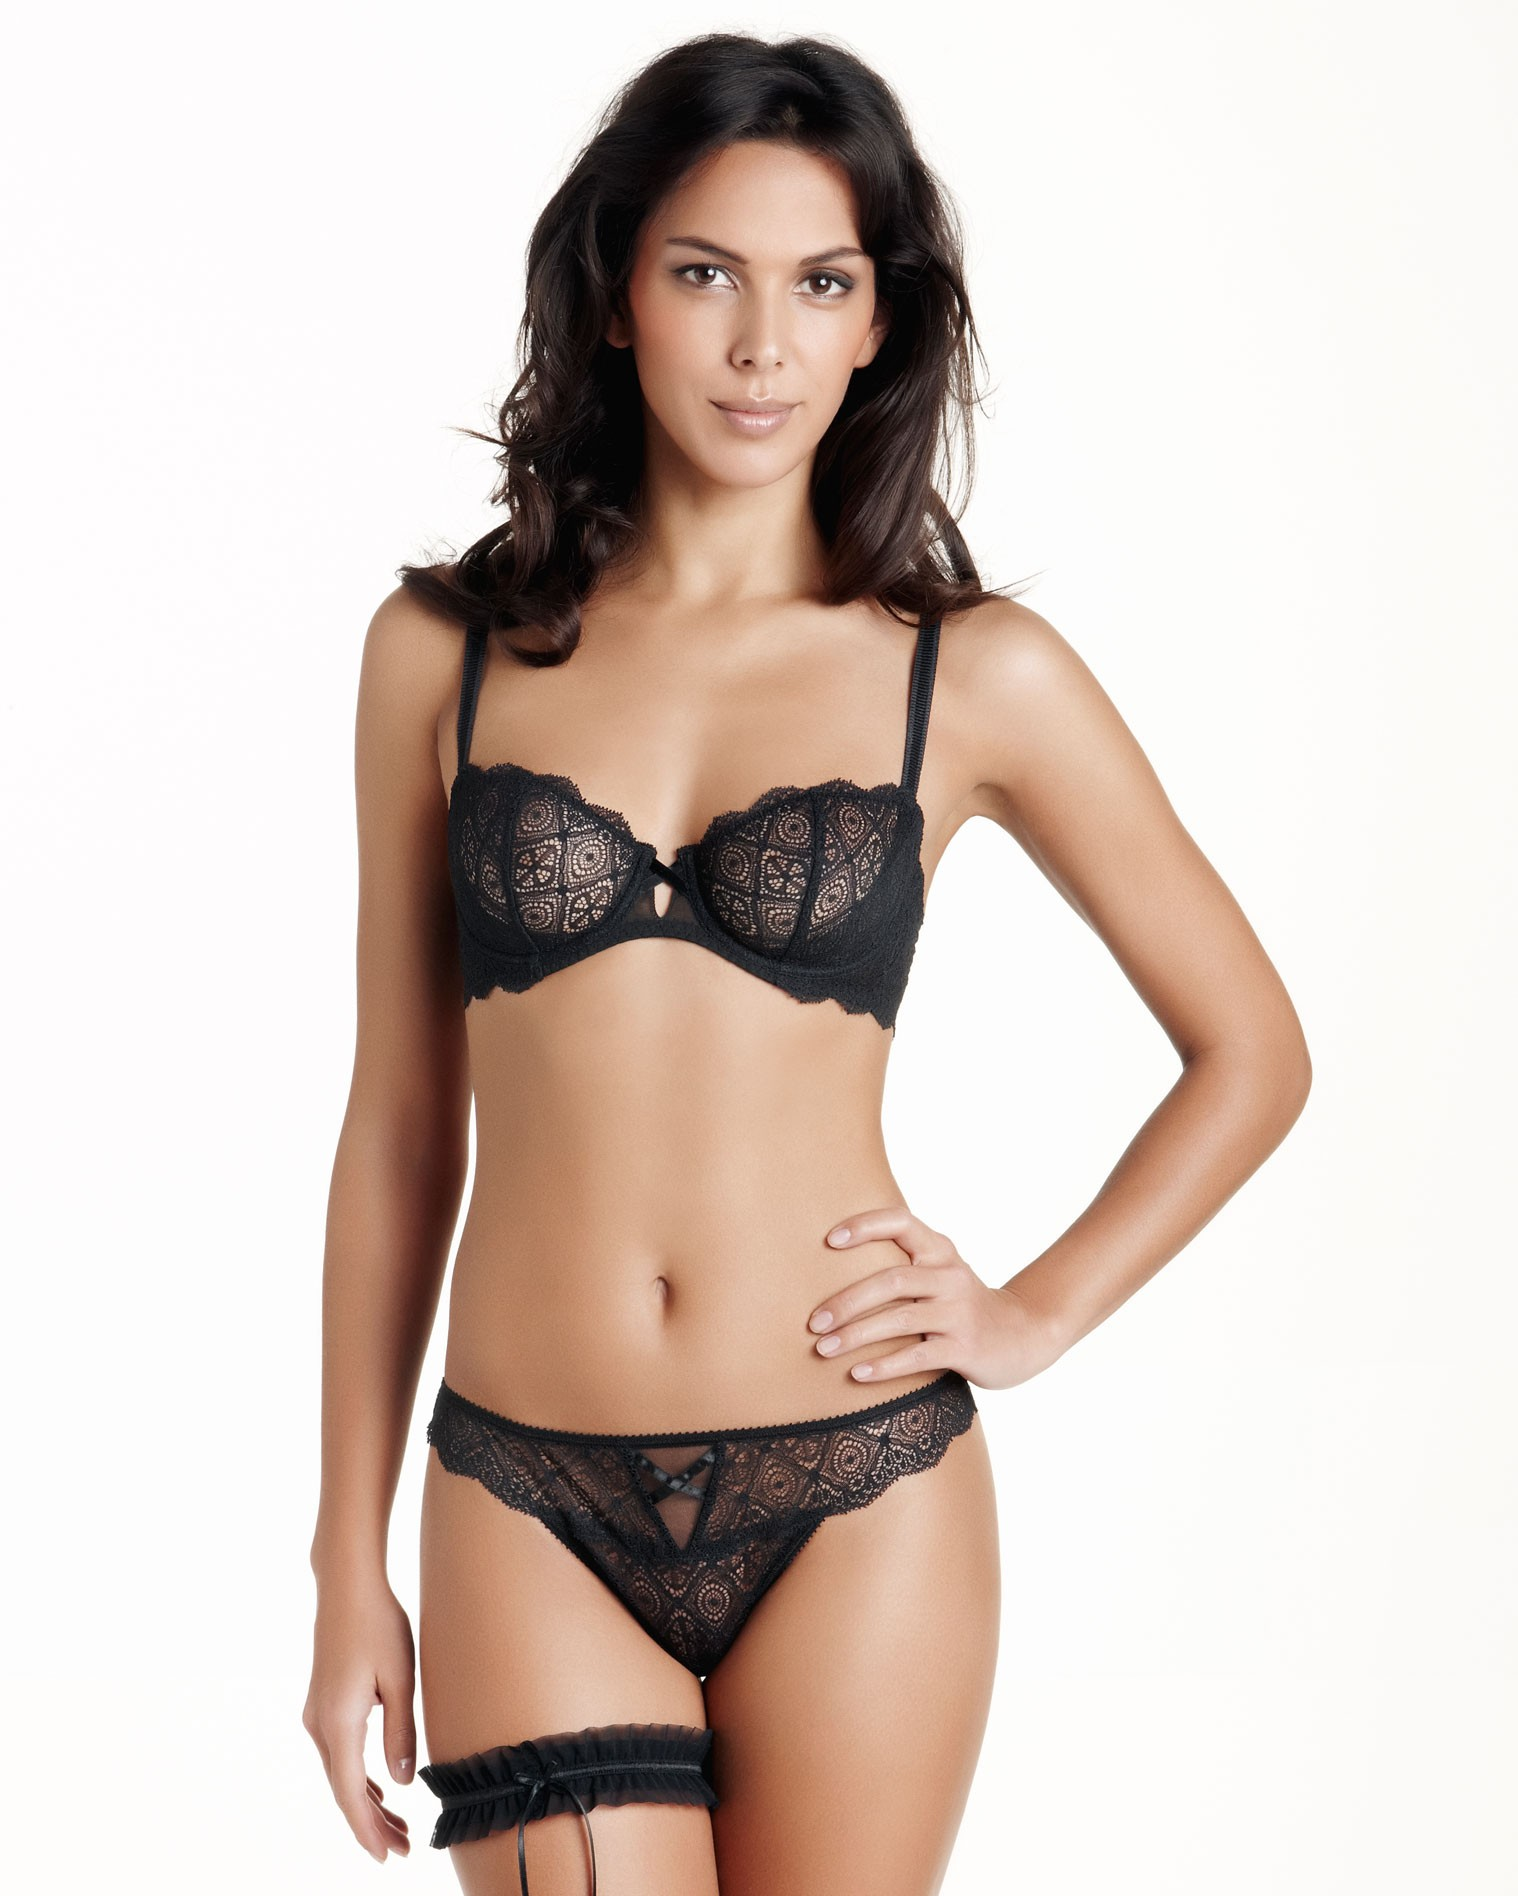 soutien-gorge translation english, French - English dictionary, meaning, see also 'soutien',soutenir',soutiendra',soutient', example of use, definition, conjugation.